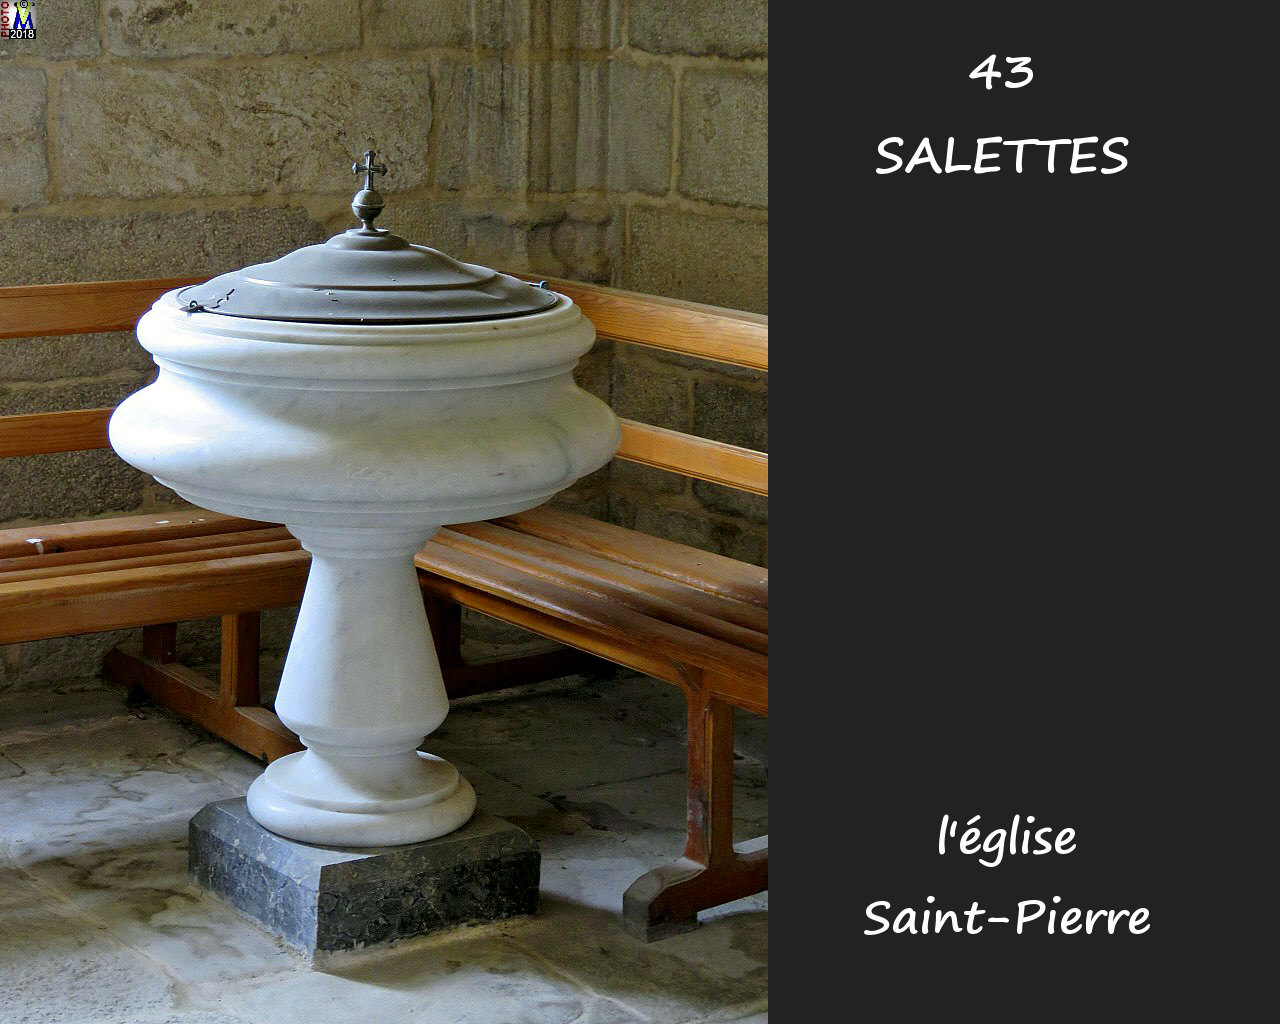 43SALETTES_eglise_242.jpg